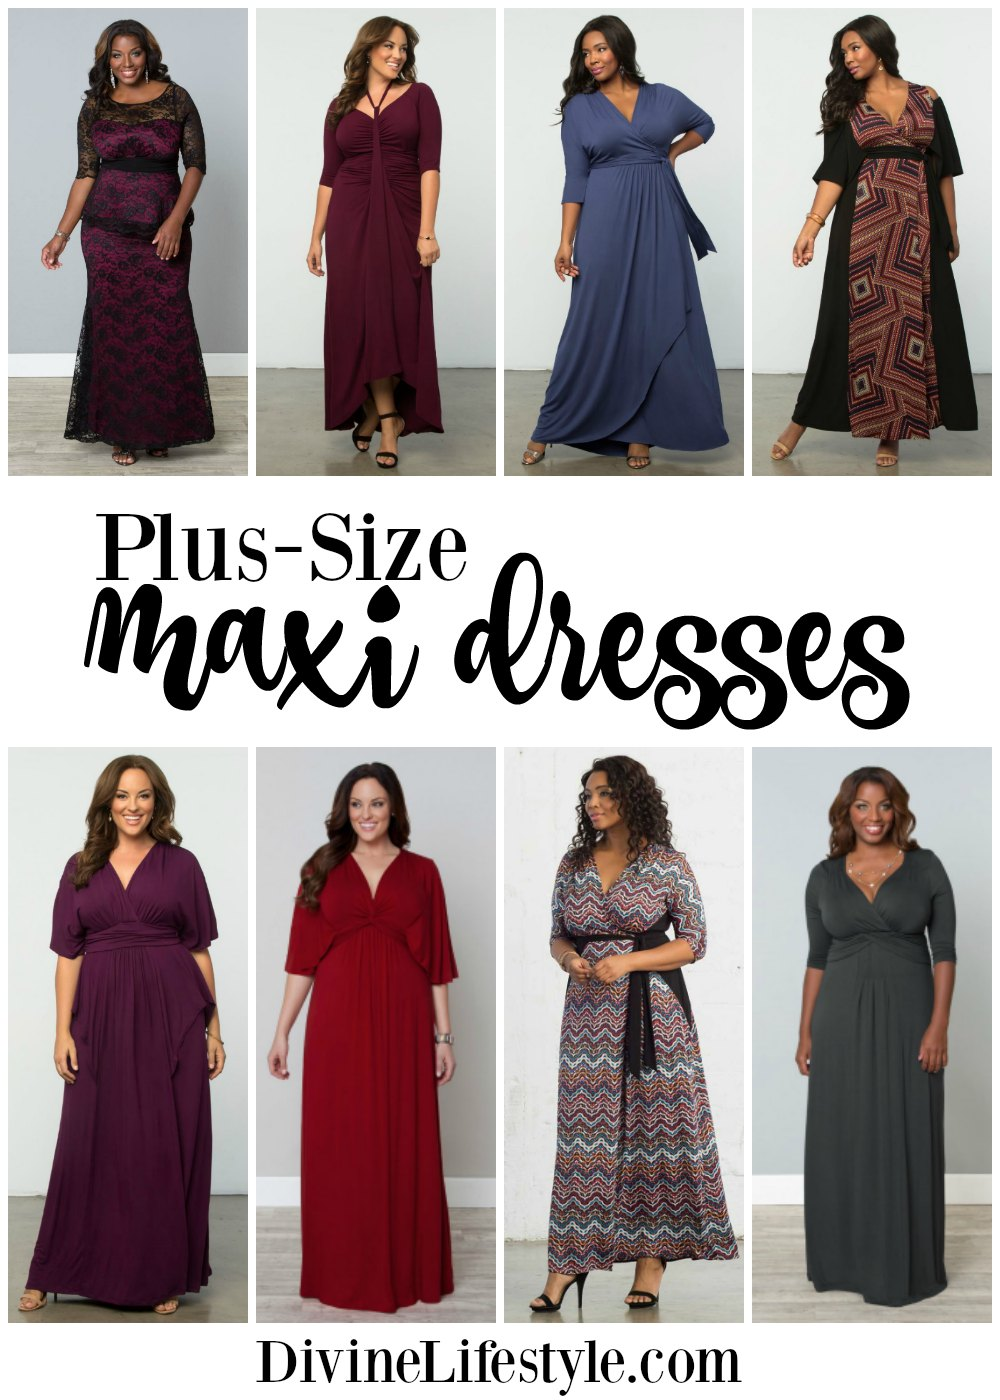 Plus-Size Maxi Dresses